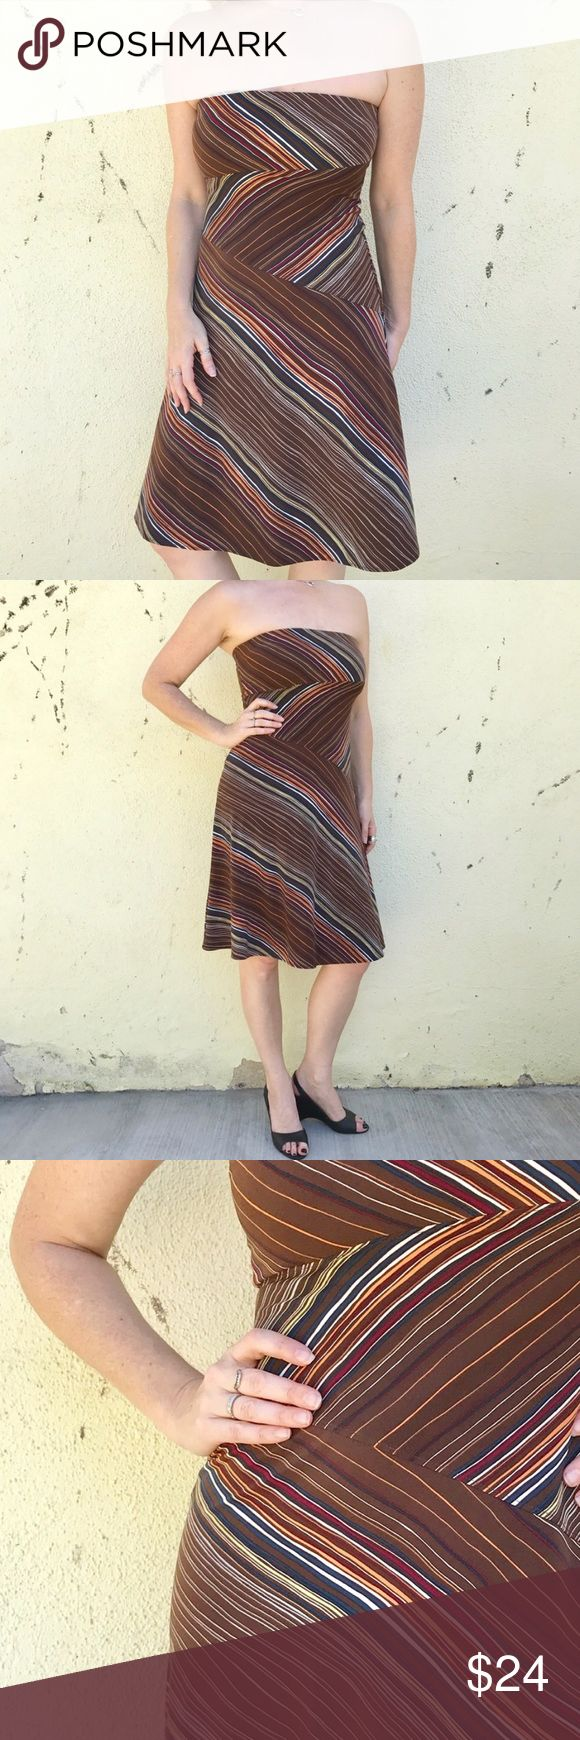 BCBGmaxazria DRESS STRAPLESS MIDI brown striped M Strapless stretch pull-on midi dress by BCBGMAXAZRIA. Brown with white, red, blue and orange. Holds in bust and fits at waist then flairs in an A-line drape. Great frock! (11.16) BCBGMaxAzria Dresses Midi